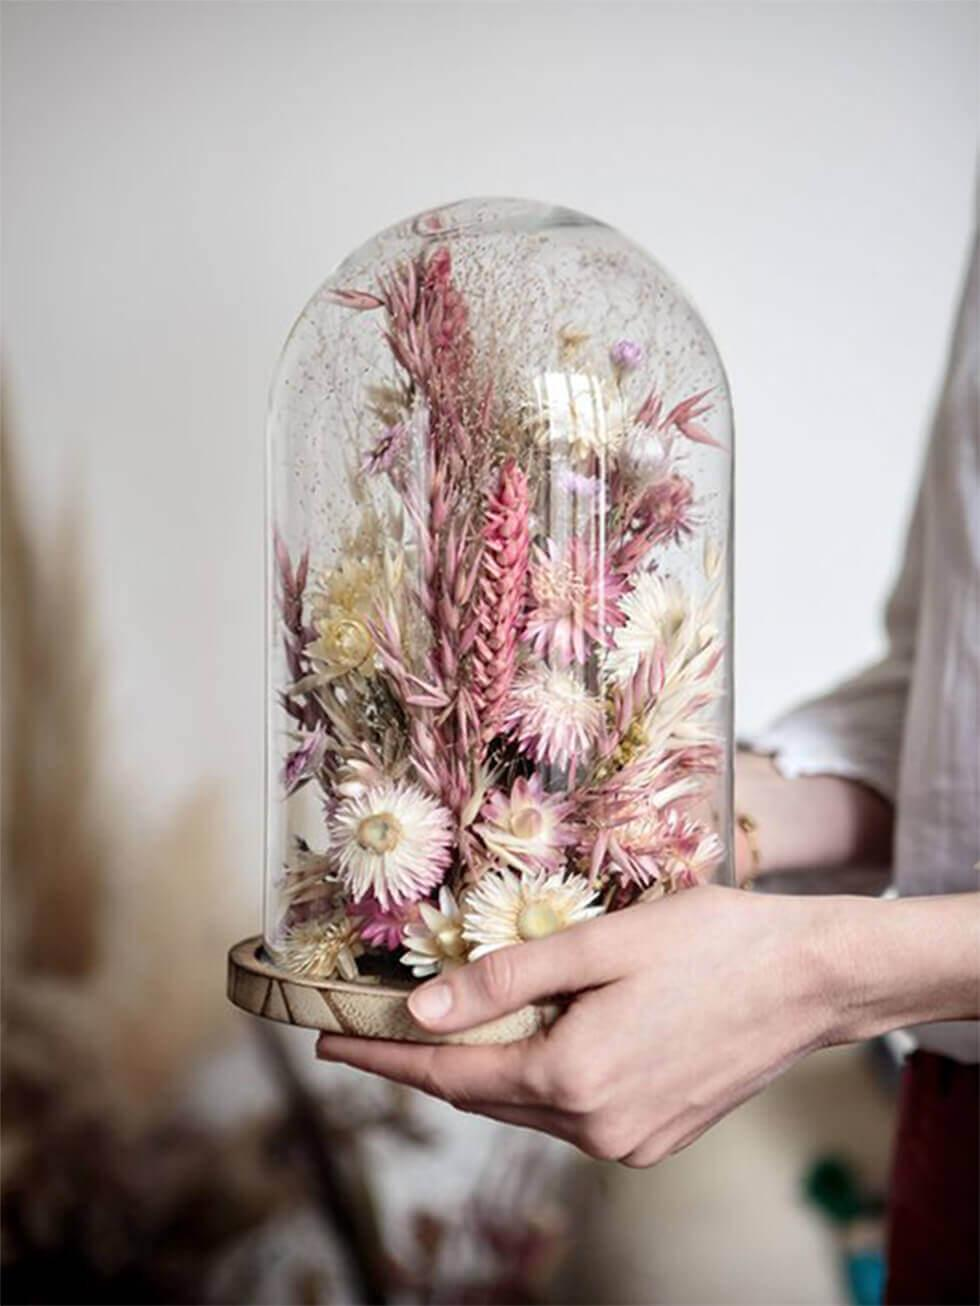 Dried flowers arranged in a sealed bell jar for decoration.